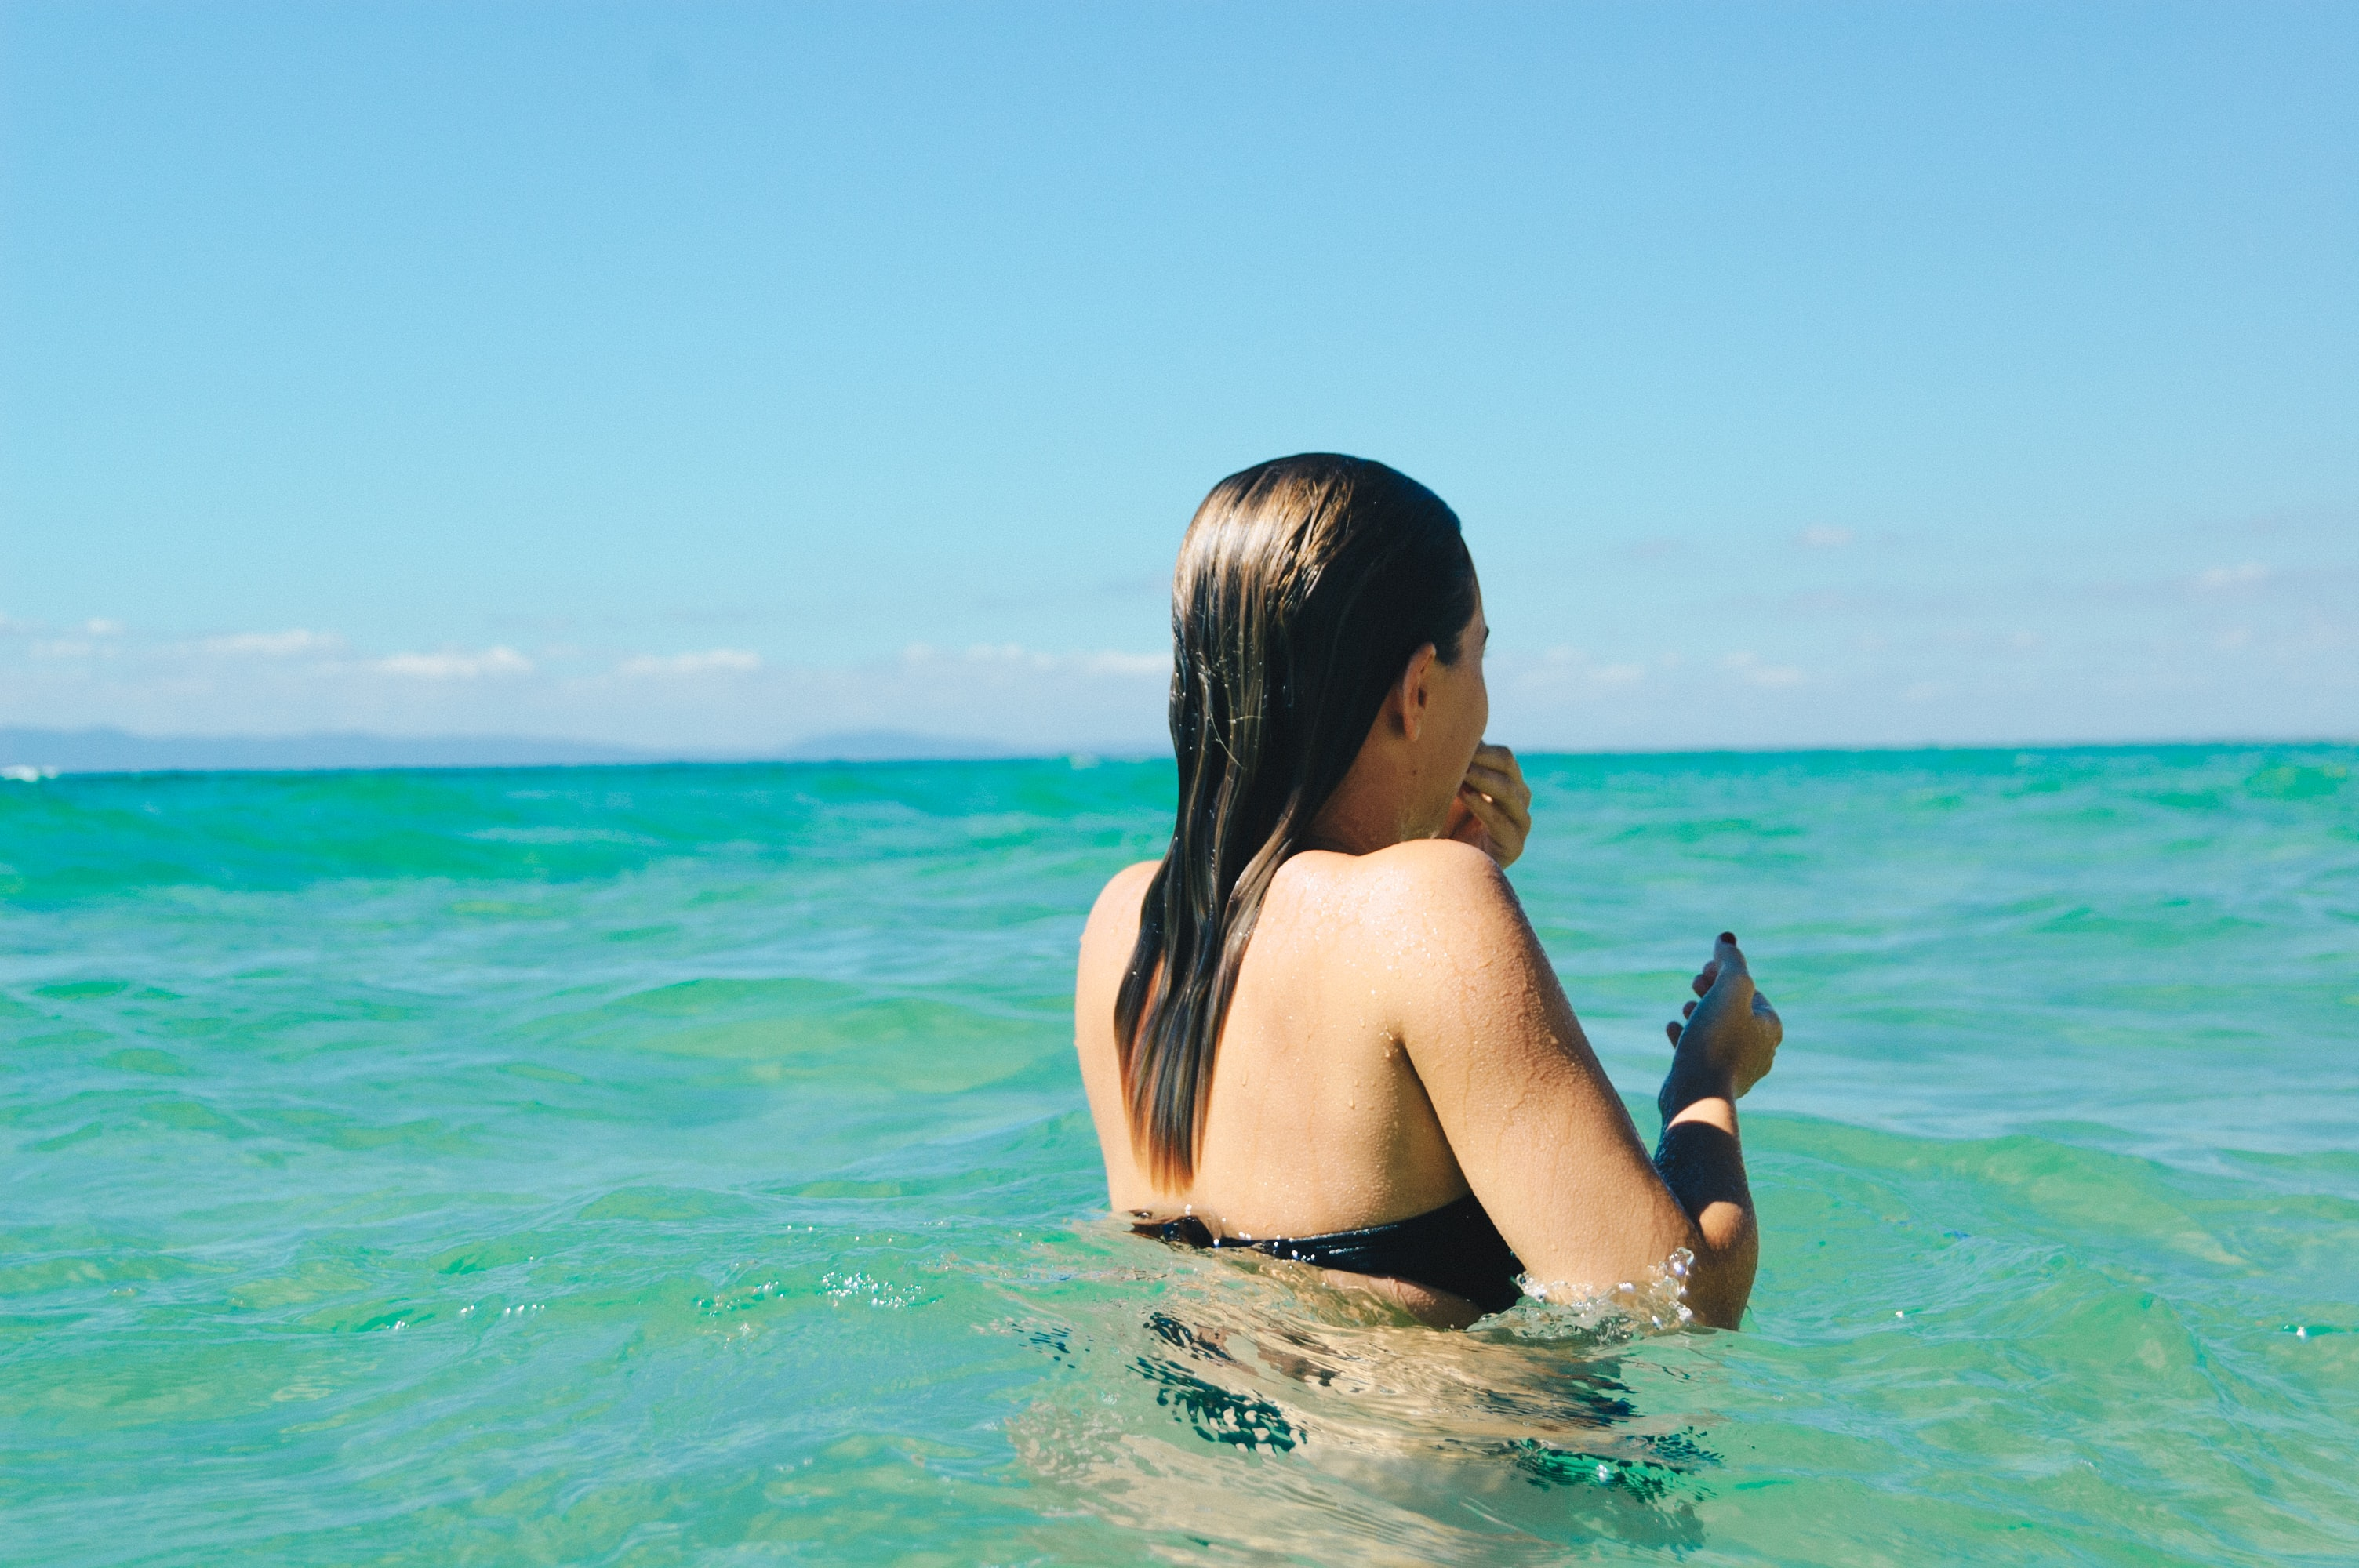 A woman swimming in the clear blue ocean with her hair wet in Melides